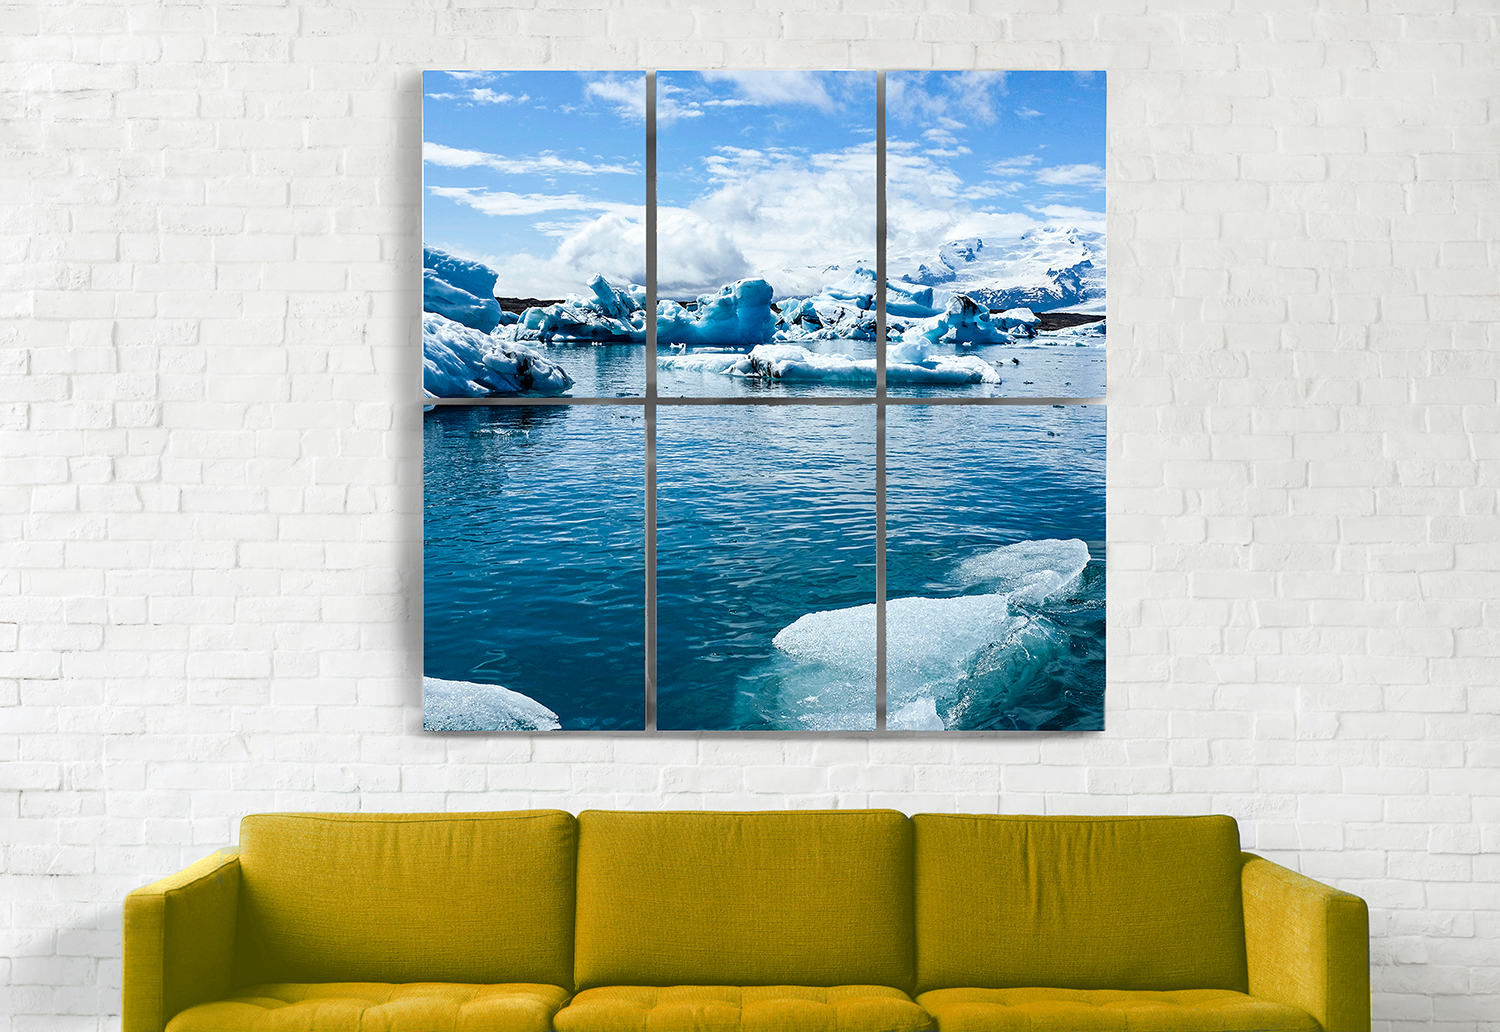 HD Metal Prints Add Drama and Excitement to Any Decor